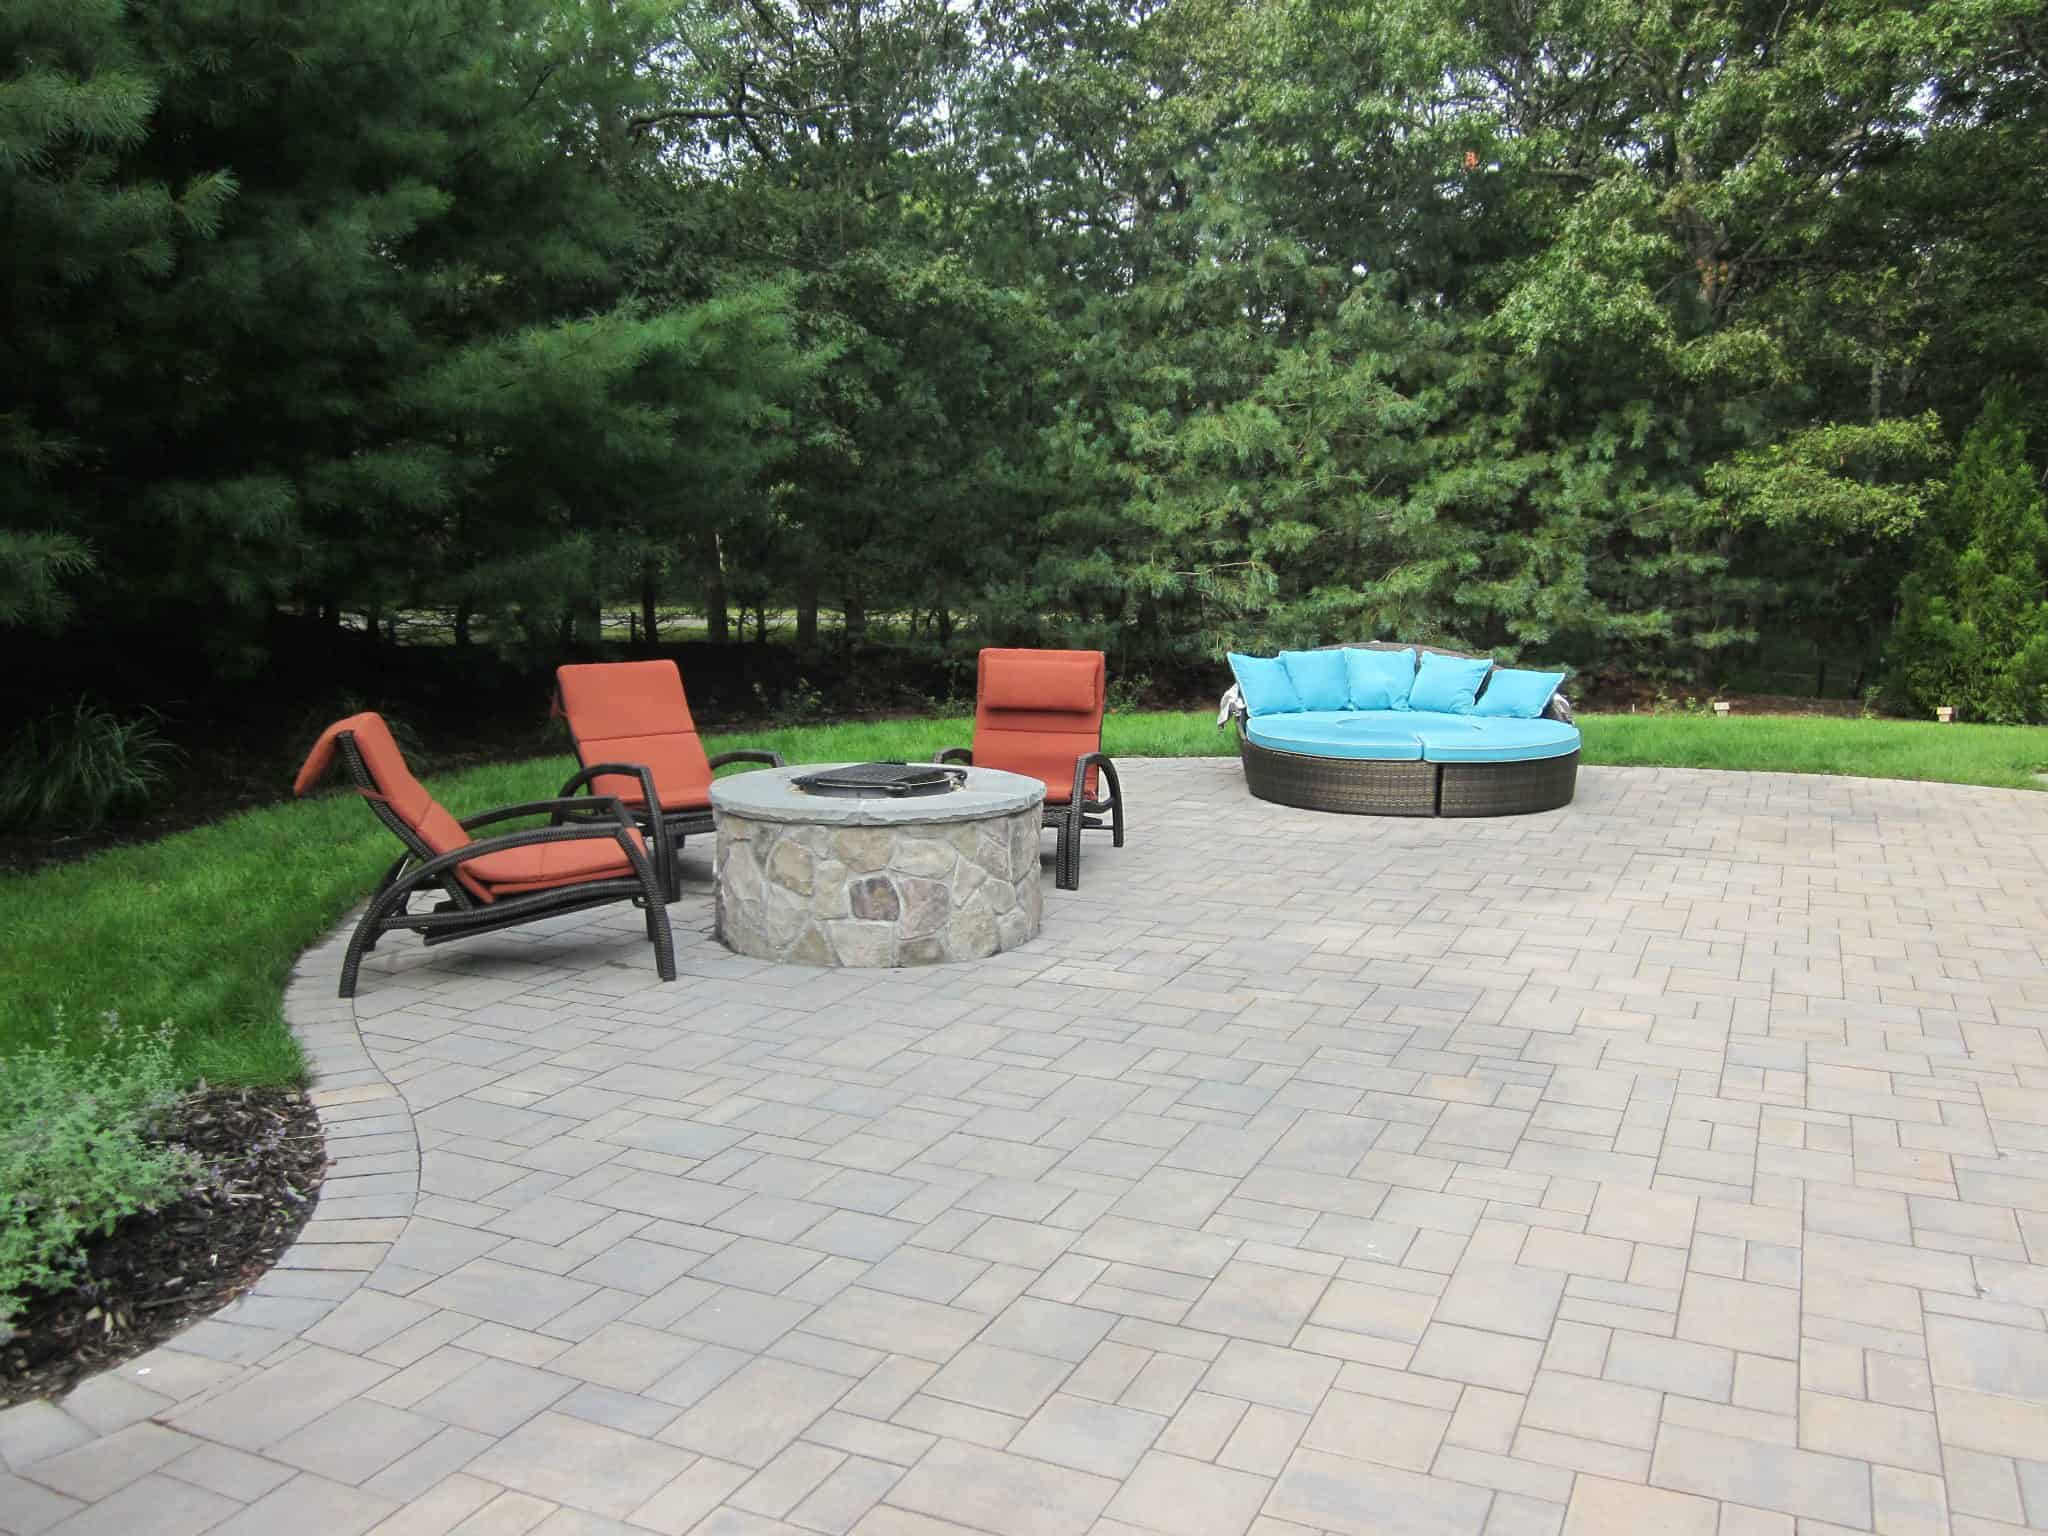 Paver Patio - Cambridge Ledgestone- Toffee Onyx - Patio- Random Pattern - Hampton Bays, Long Island NY